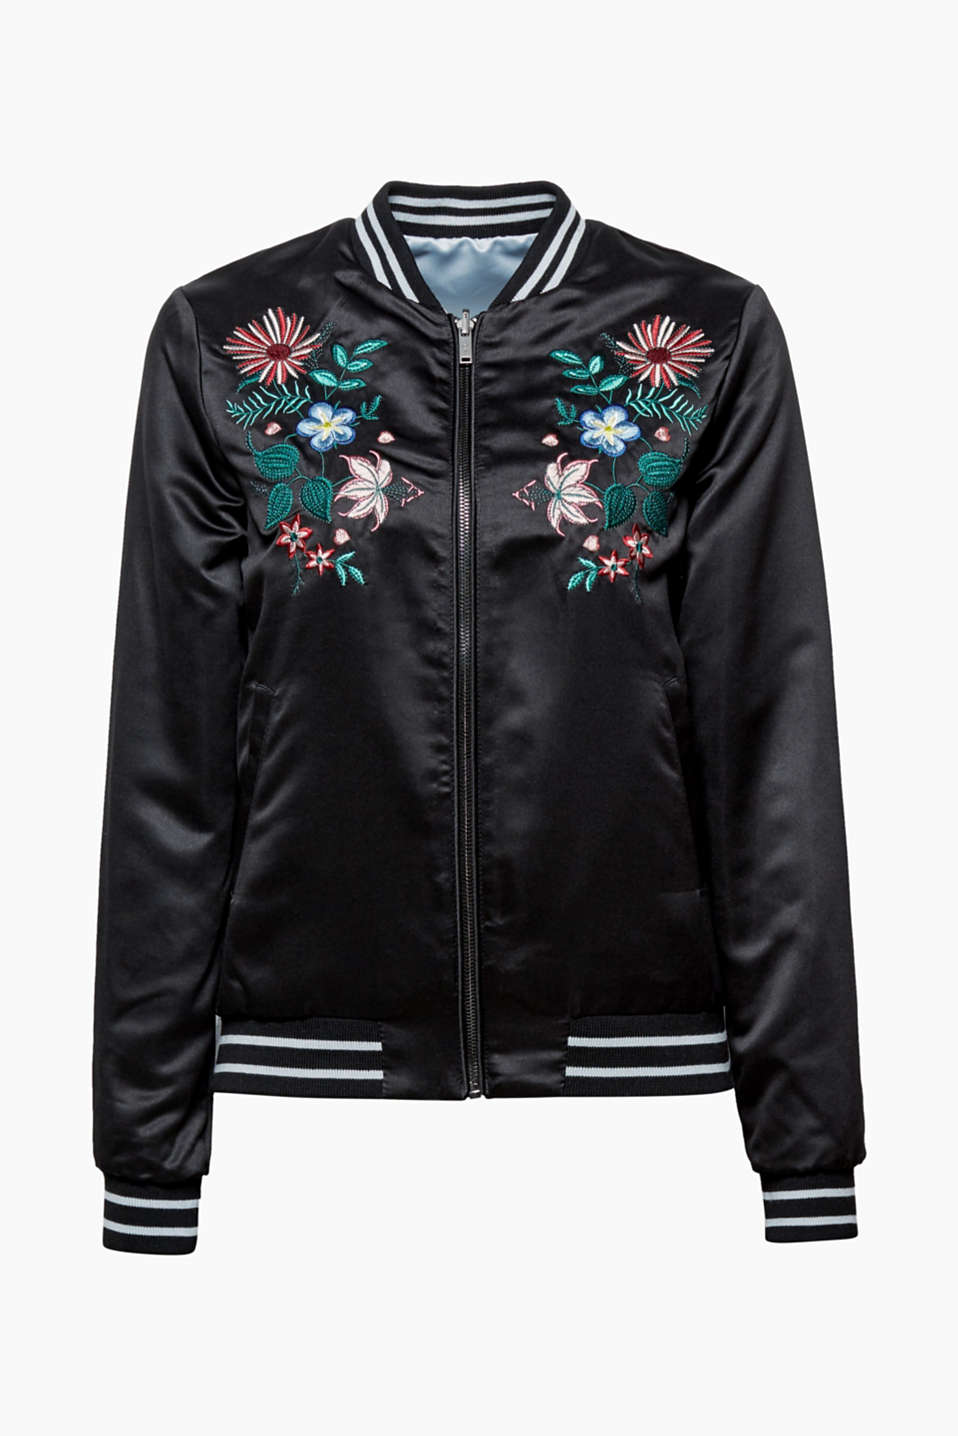 This bomber jacket made of shiny satin has two good sides – with colourful embroidery on one side!